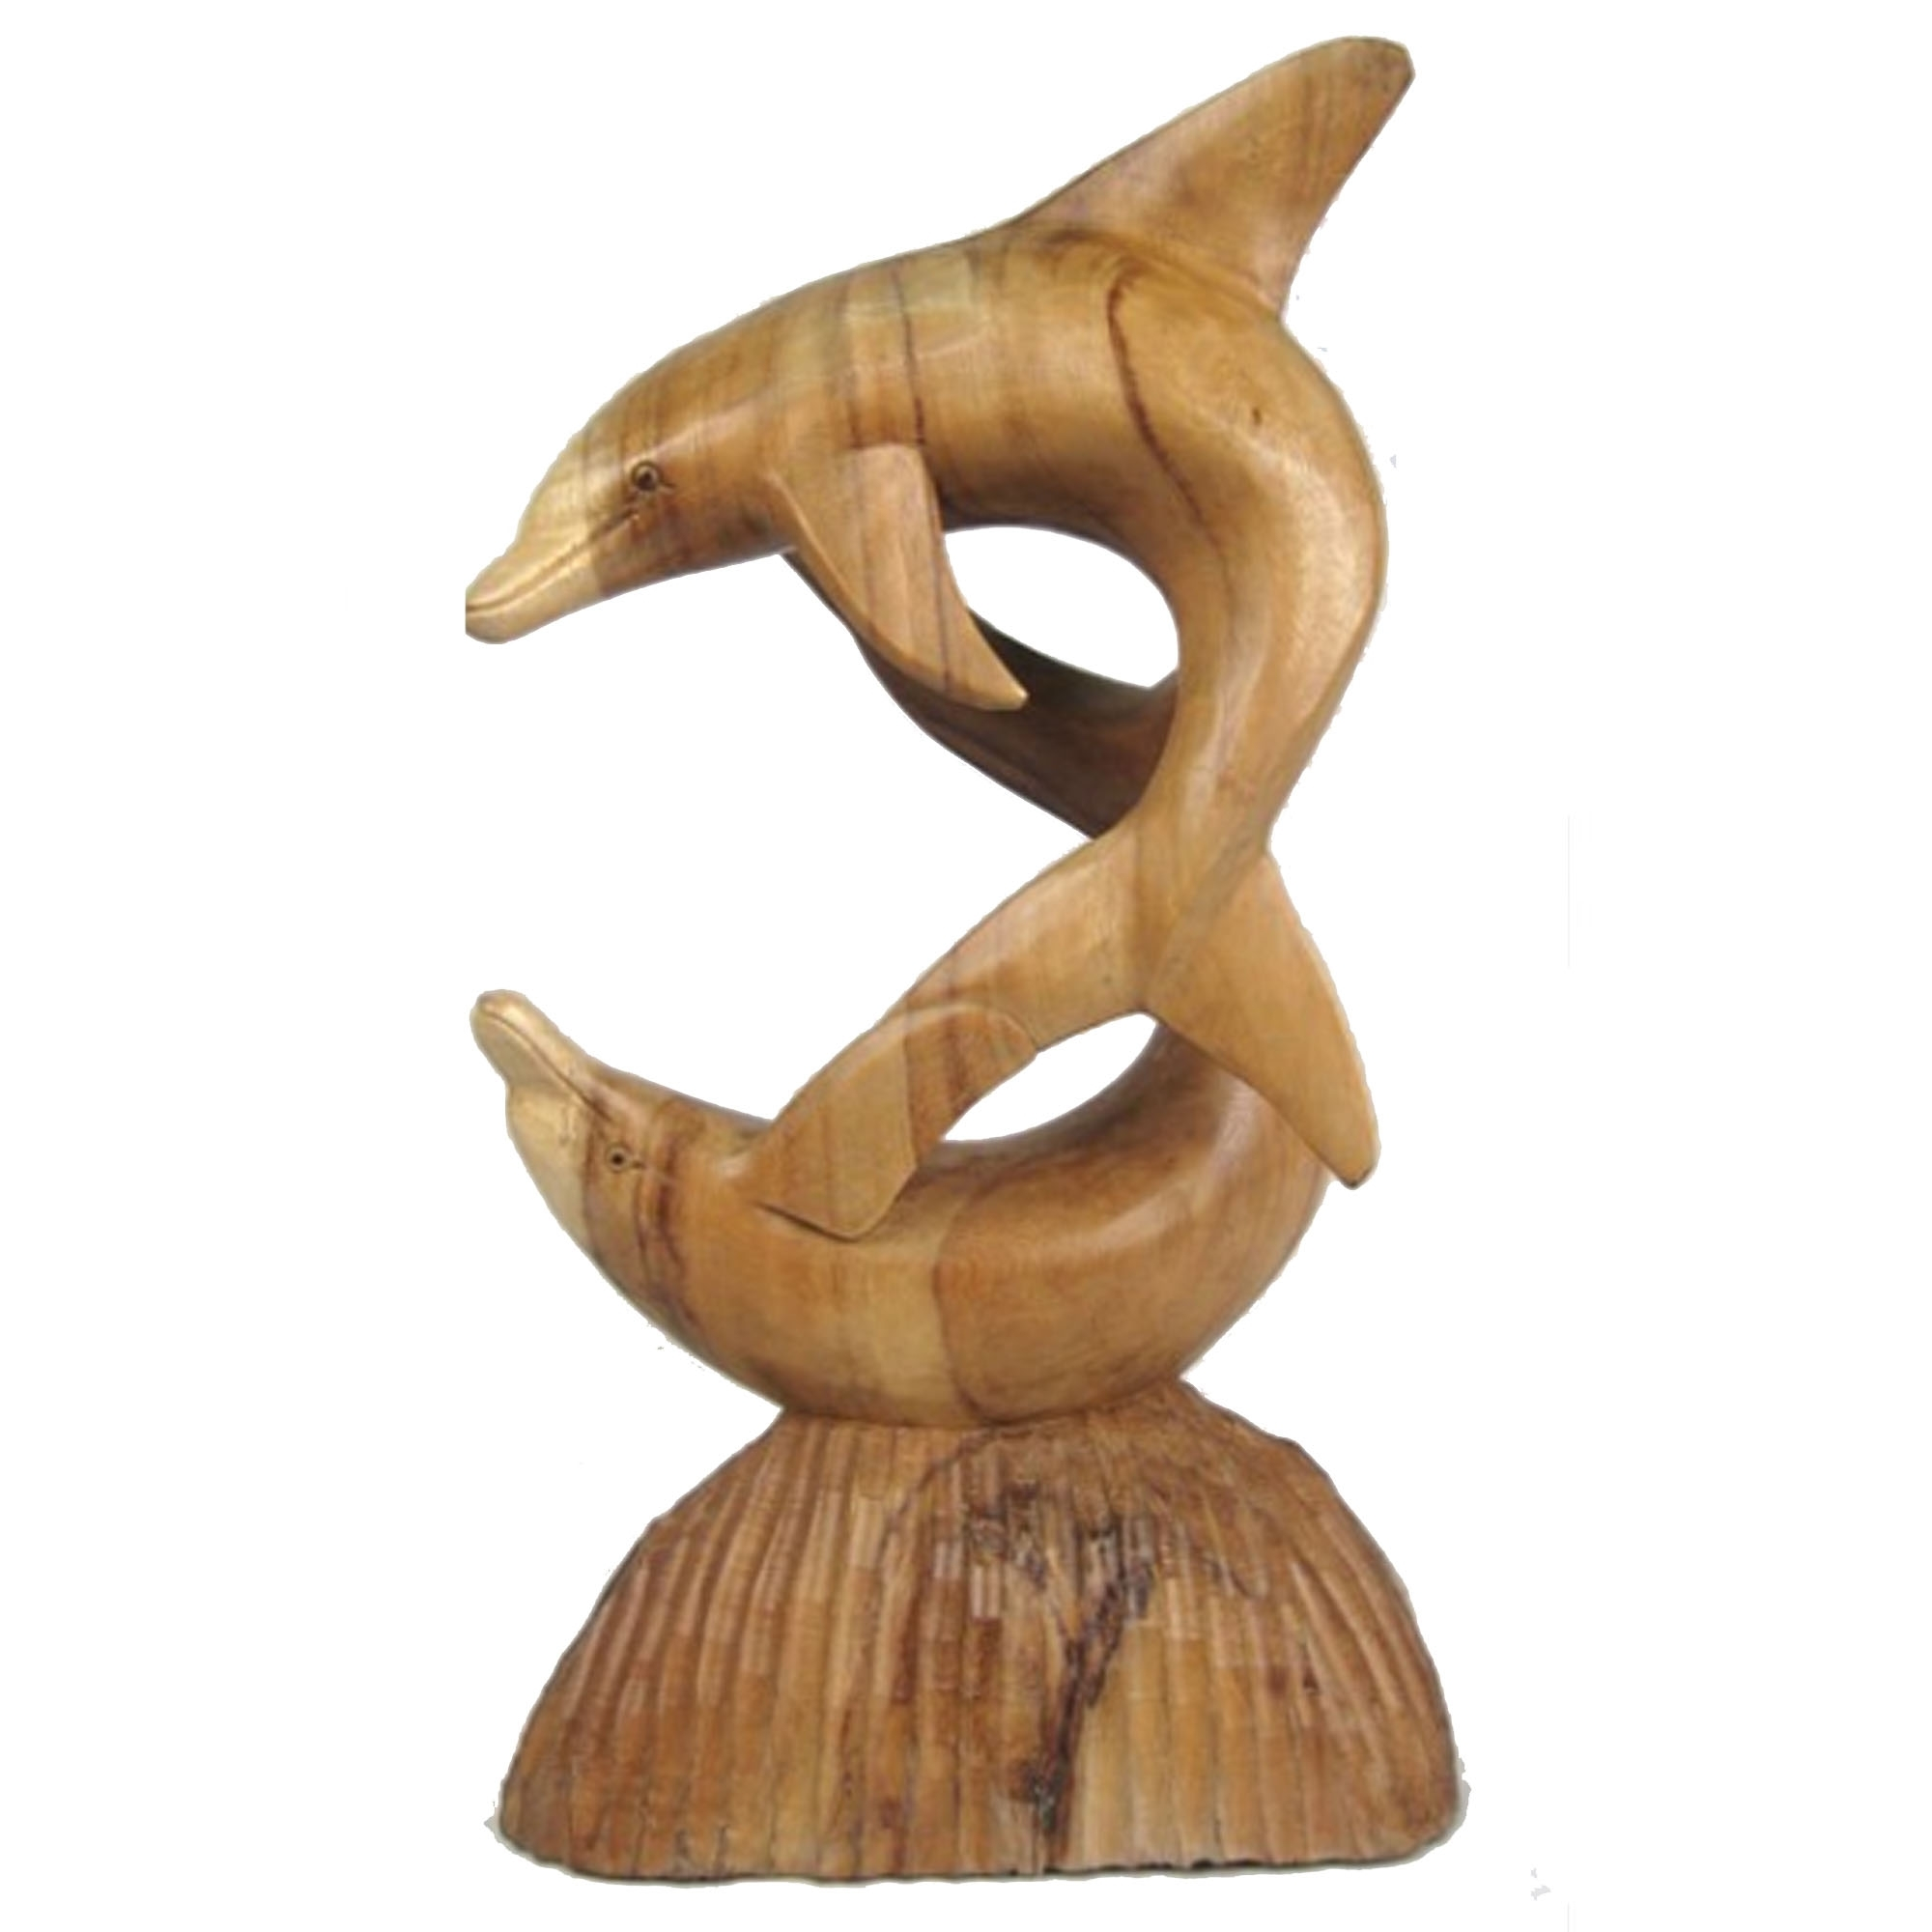 Wooden Dolphins Ornament Home Accessories Wooden Carving